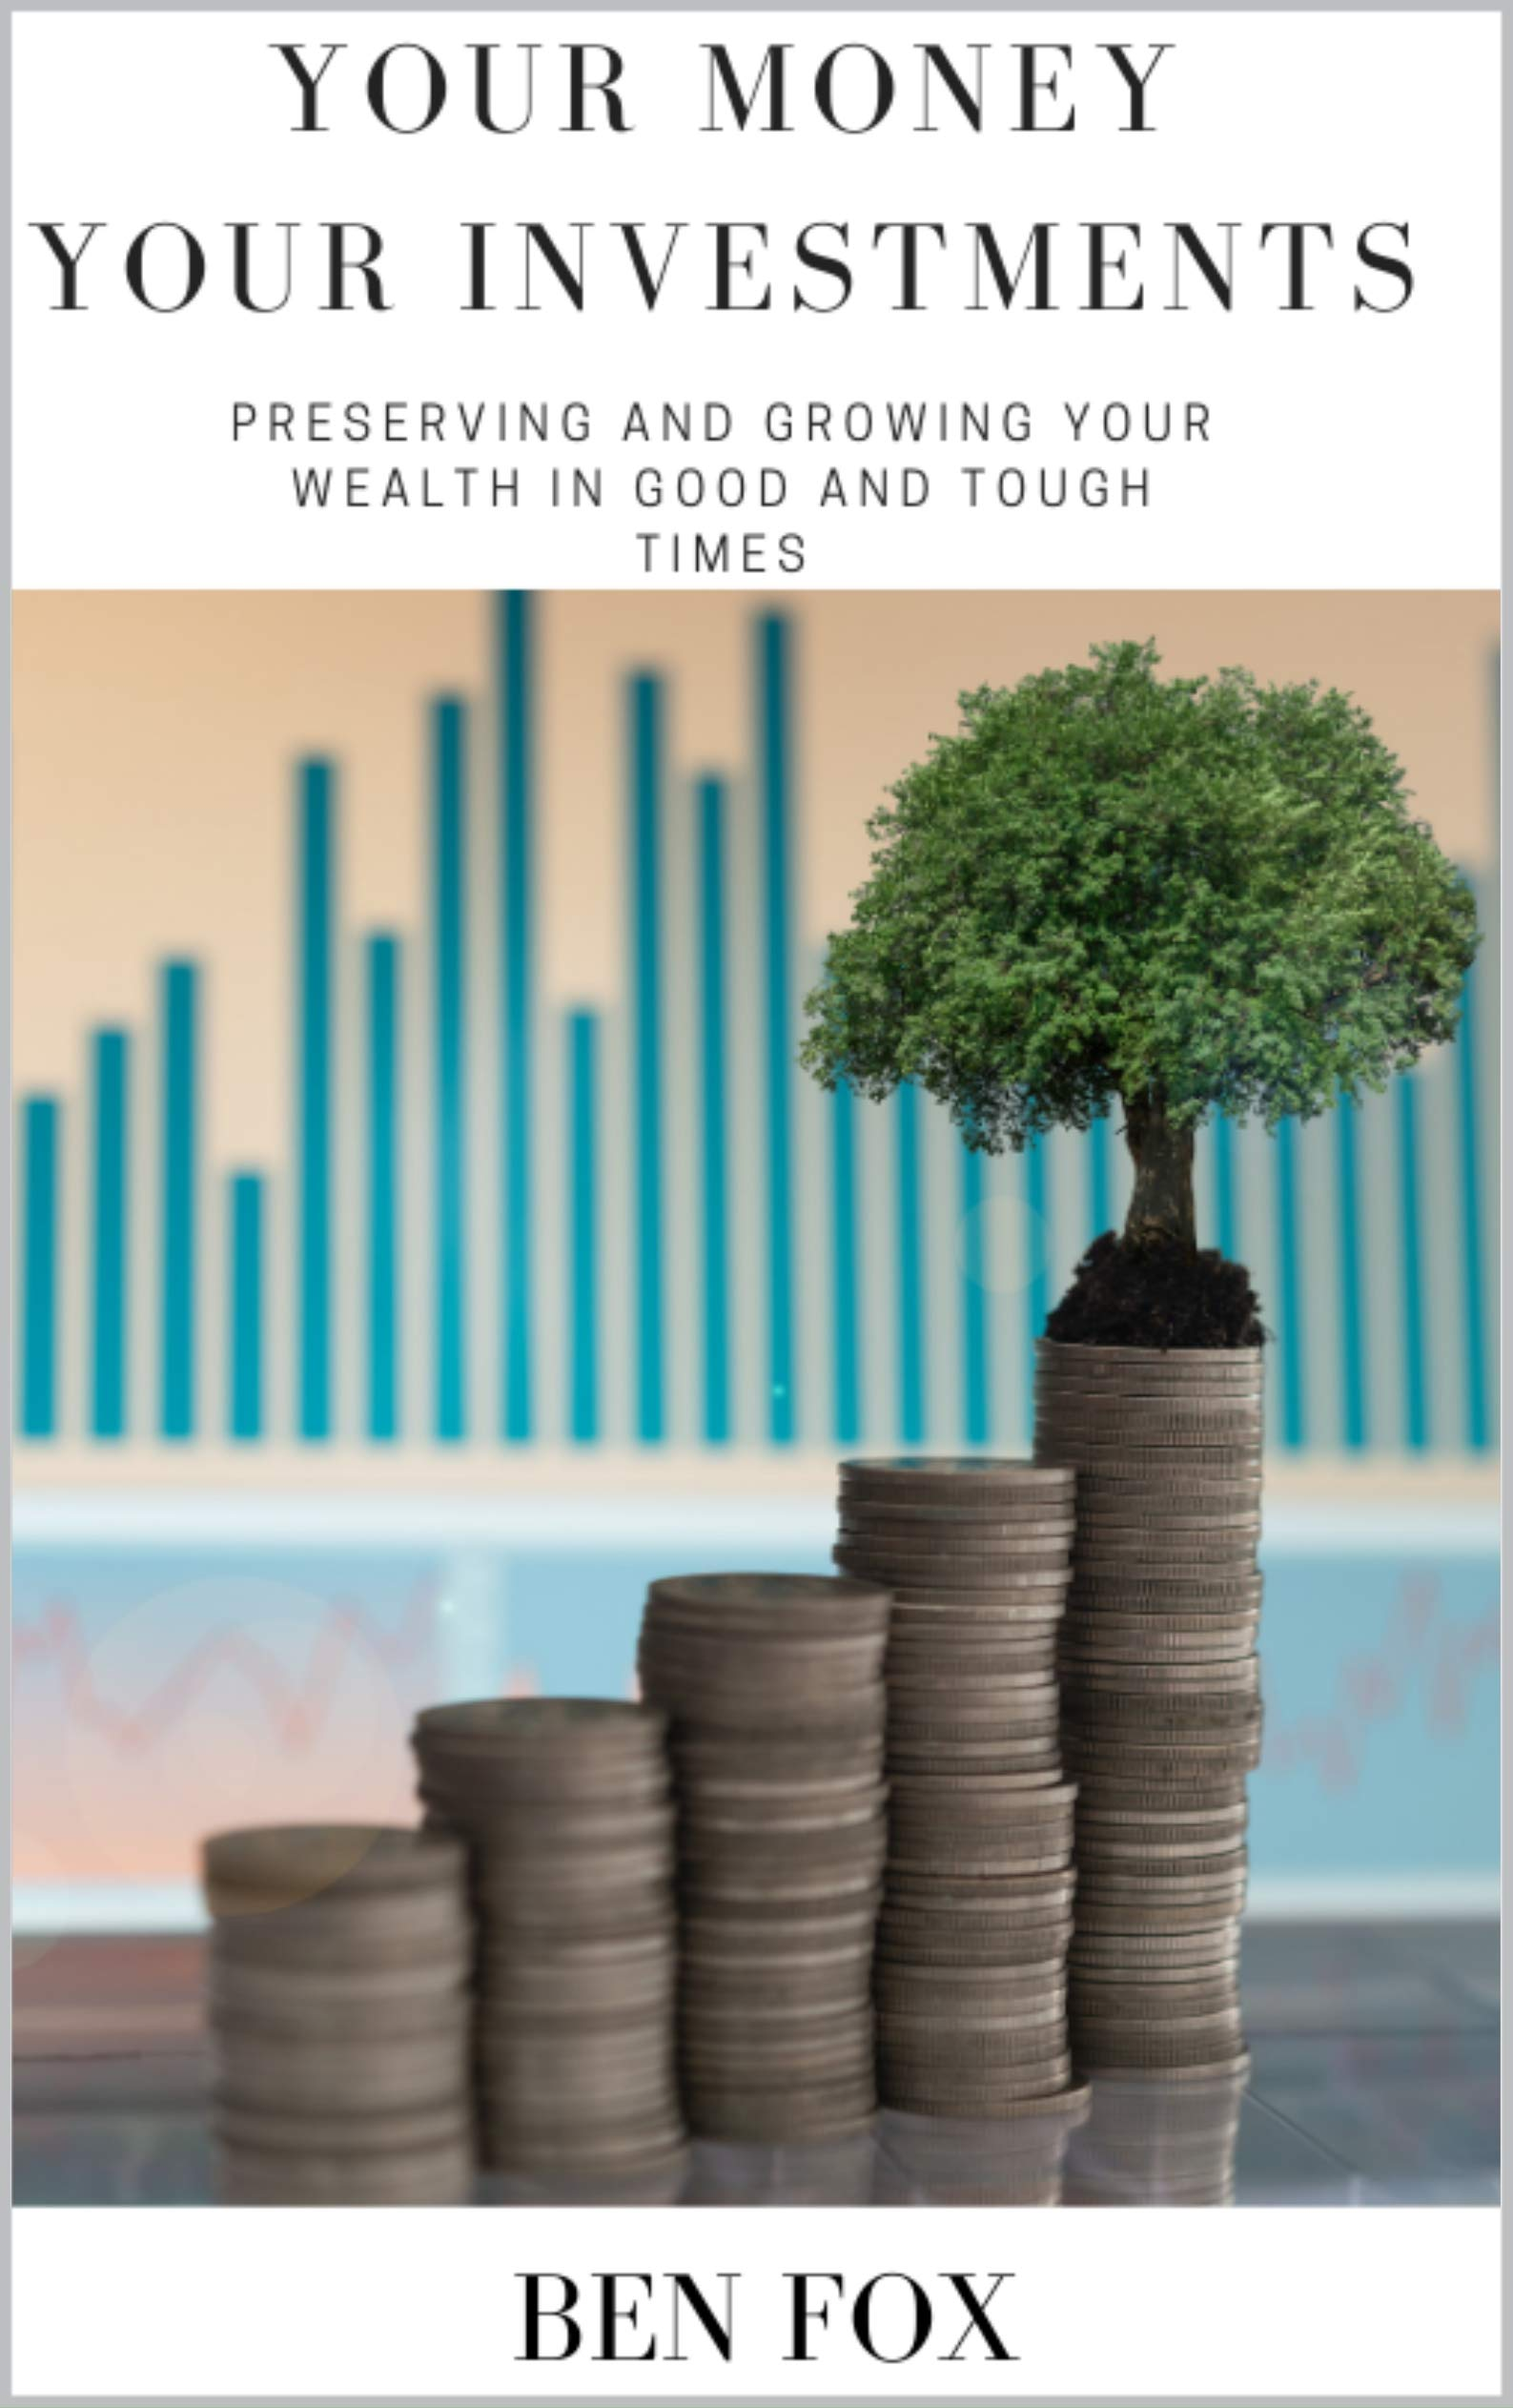 Your Money Your Investments: Preserving and growing your wealth in good and tough times